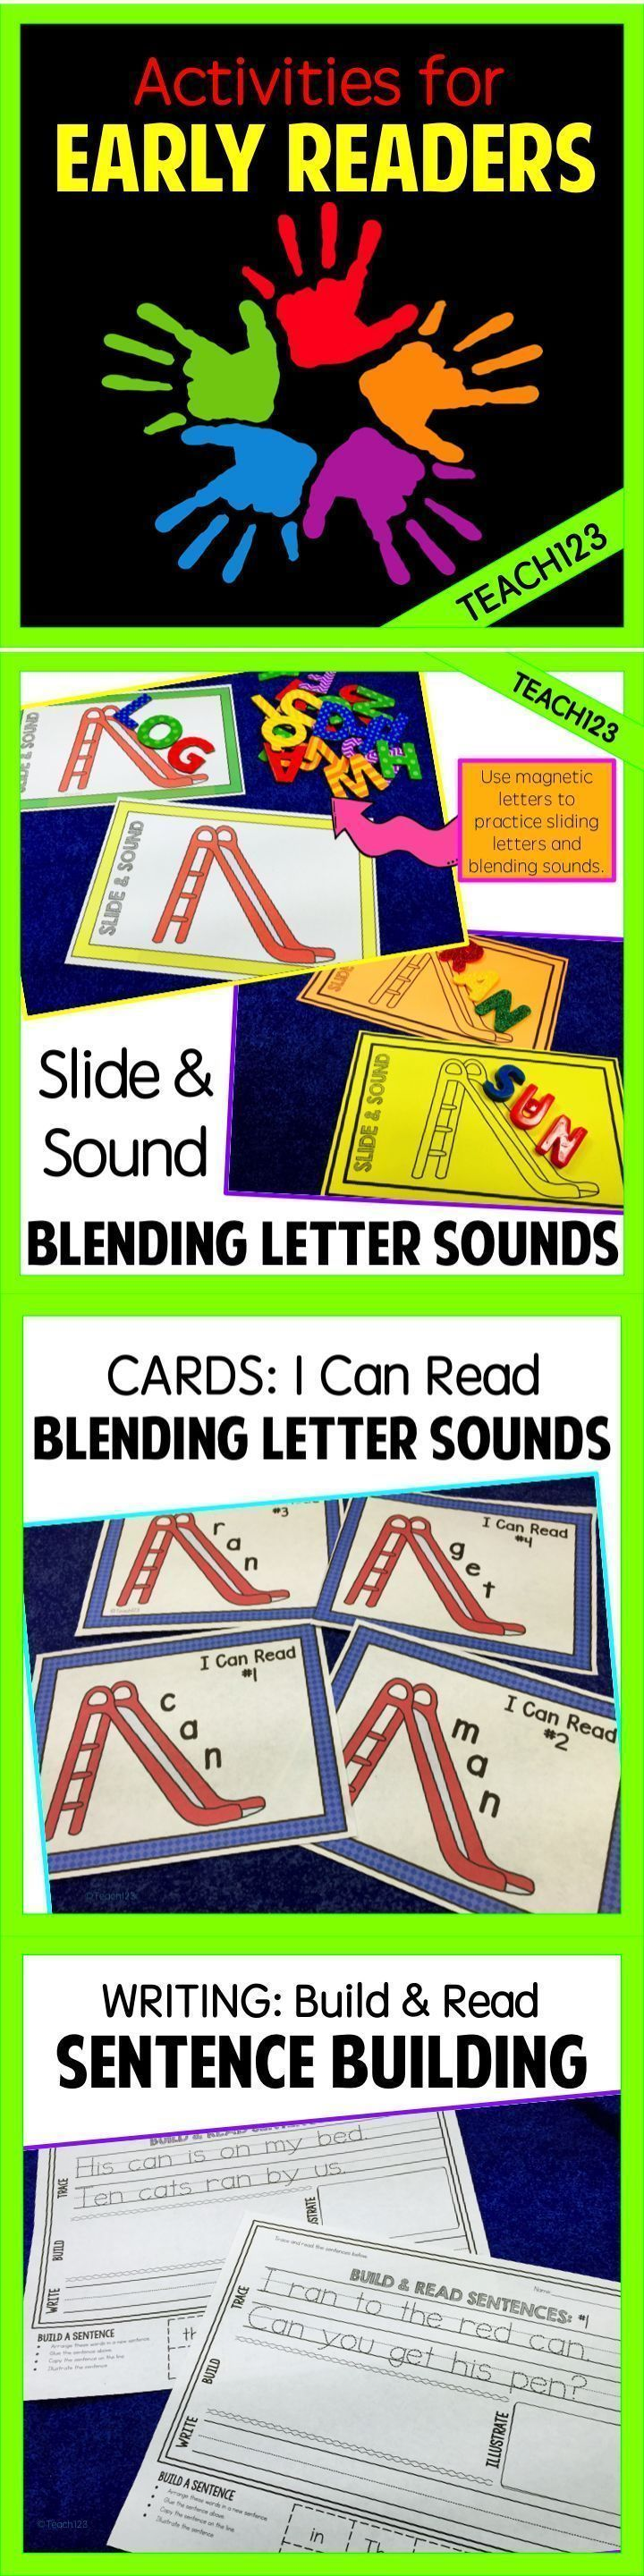 FREE Reading strategies for early readers: use a letter slide to work on blending sounds, practice high frequency words on the slide, and build sentence assignments.